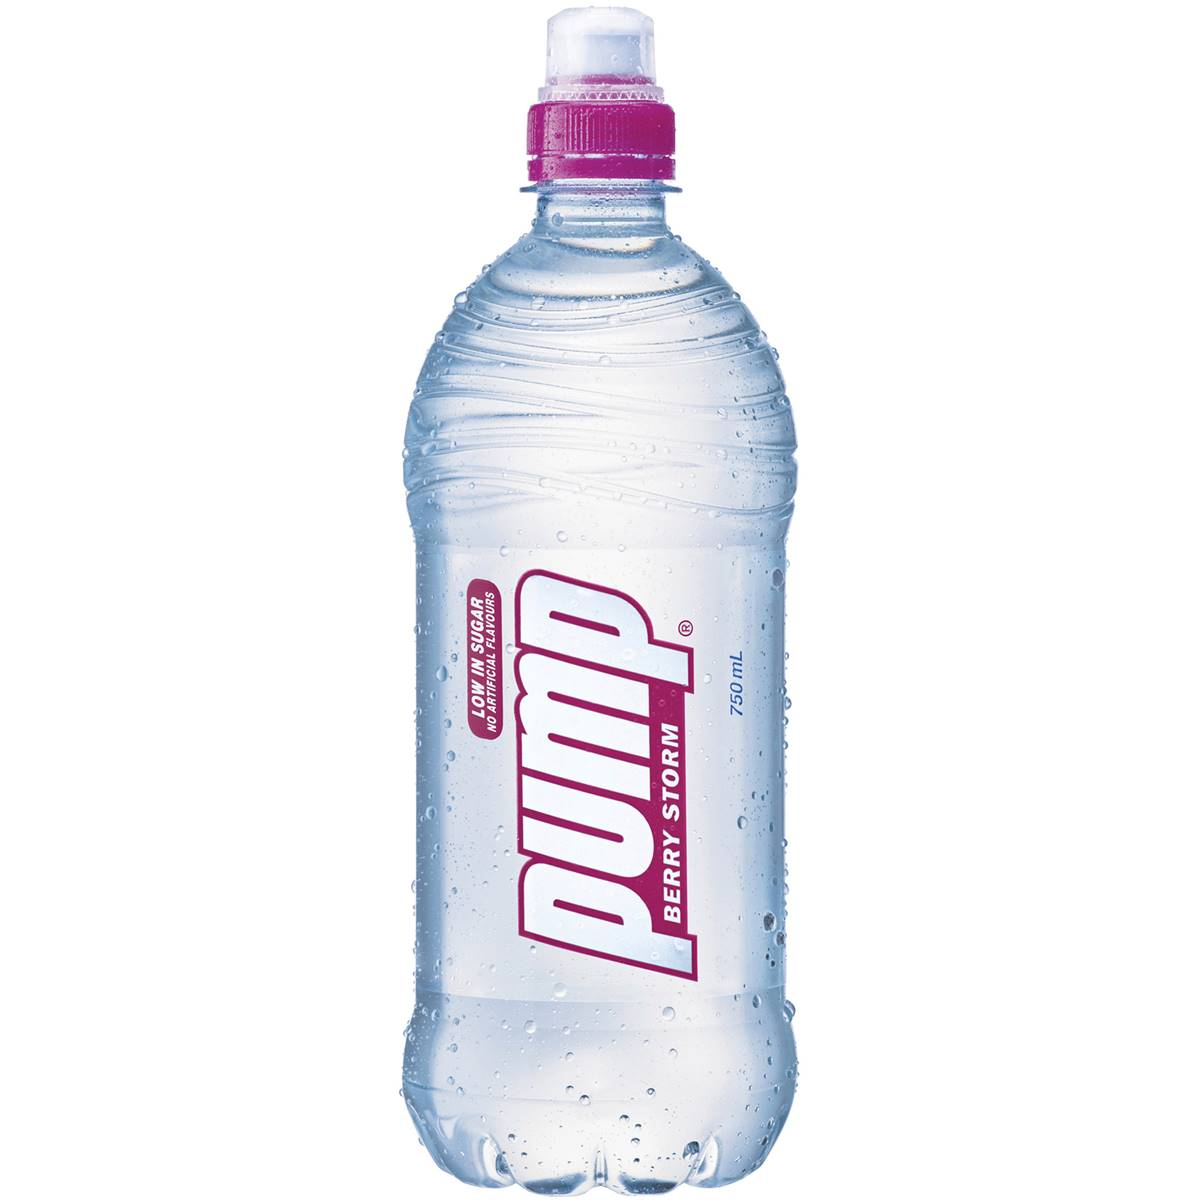 Pump Water Pump Flavoured Water Berry Bottle 750ml Woolworths